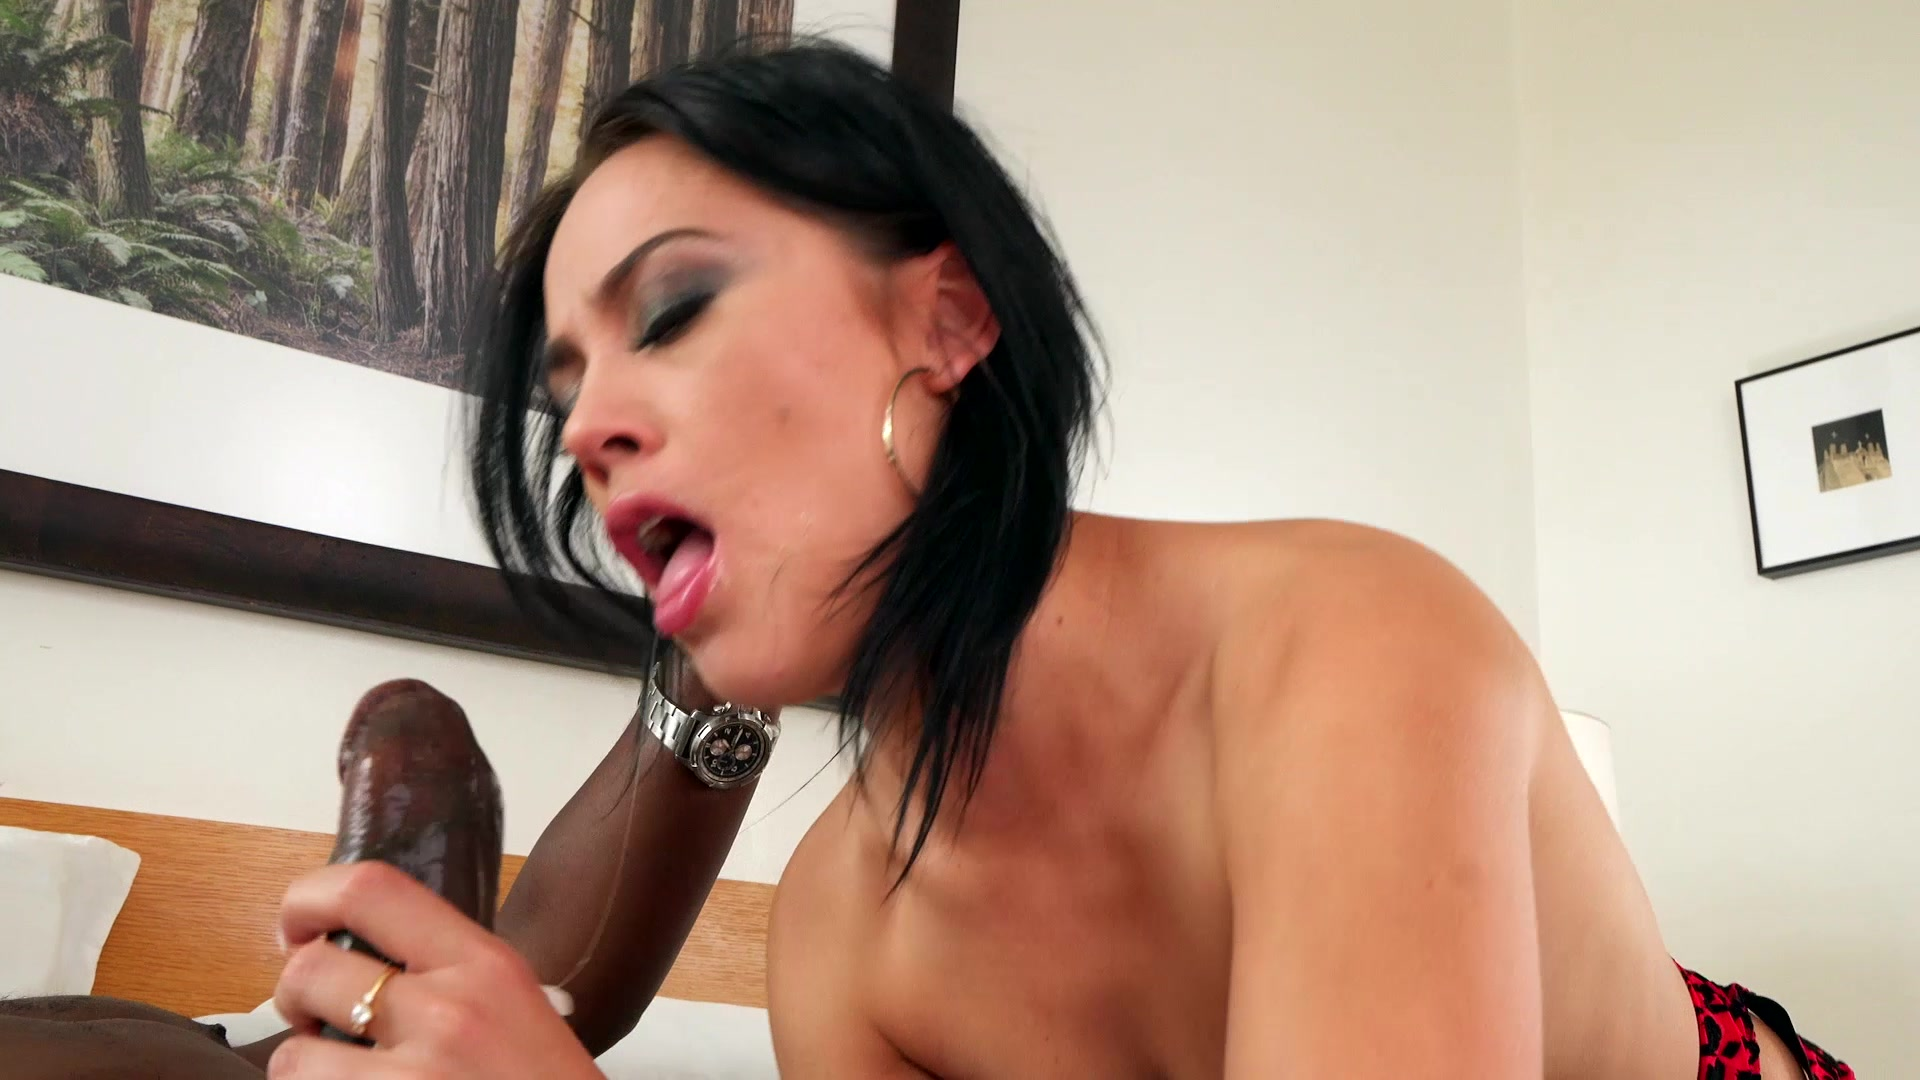 Free Video Preview image 1 from Gag Reflex 2